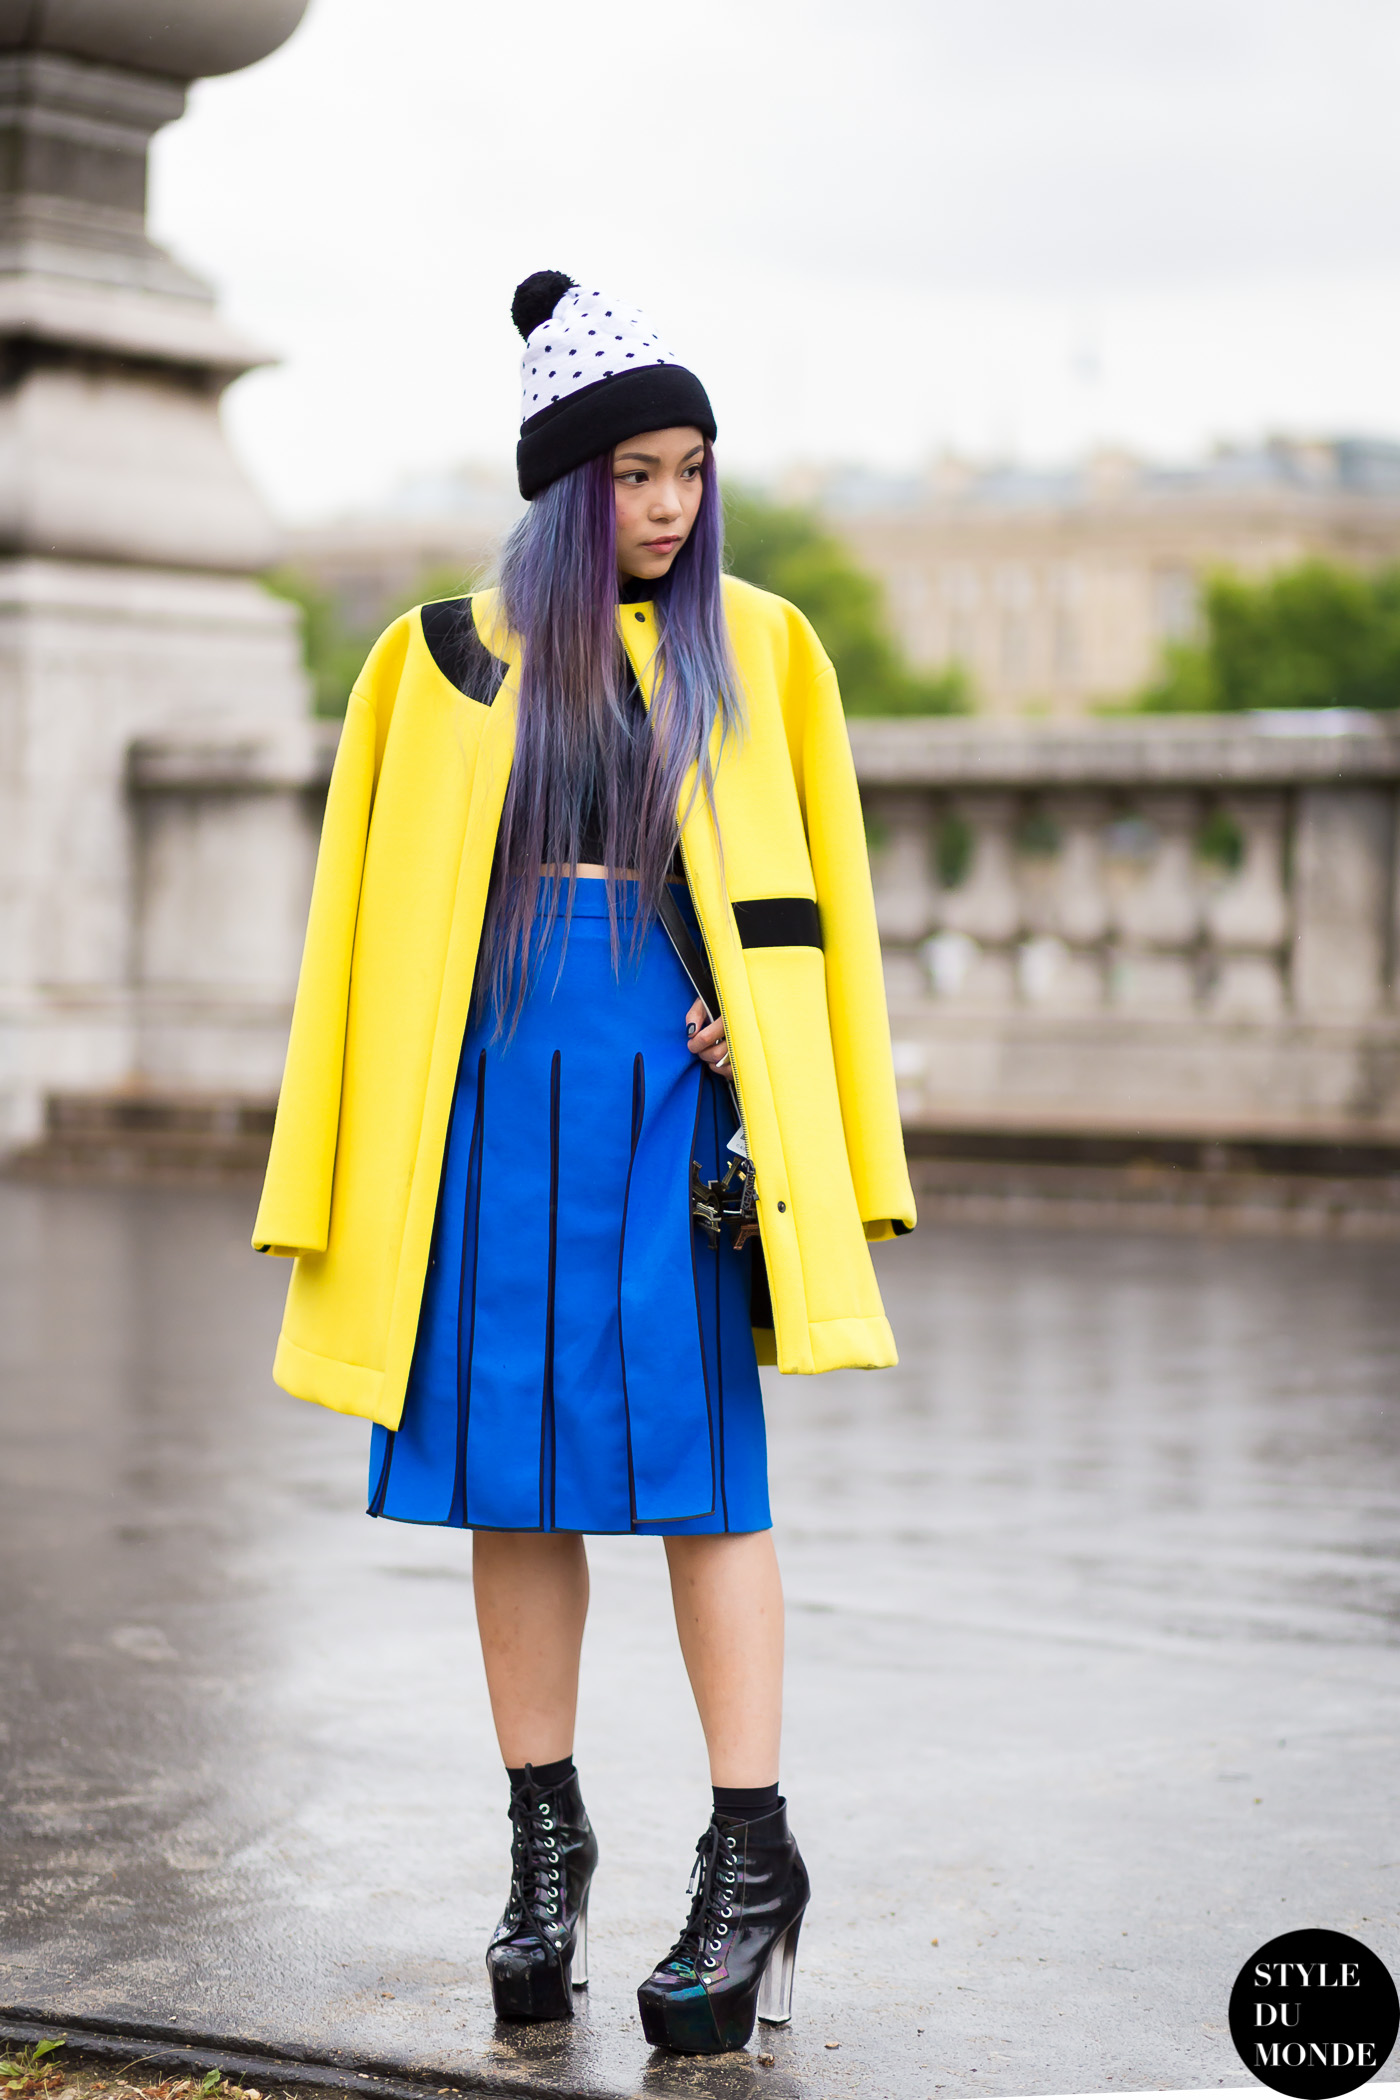 After Kenzo Street Style Street Fashion Streetsnaps by STYLEDUMONDE Street Style Fashion Blog